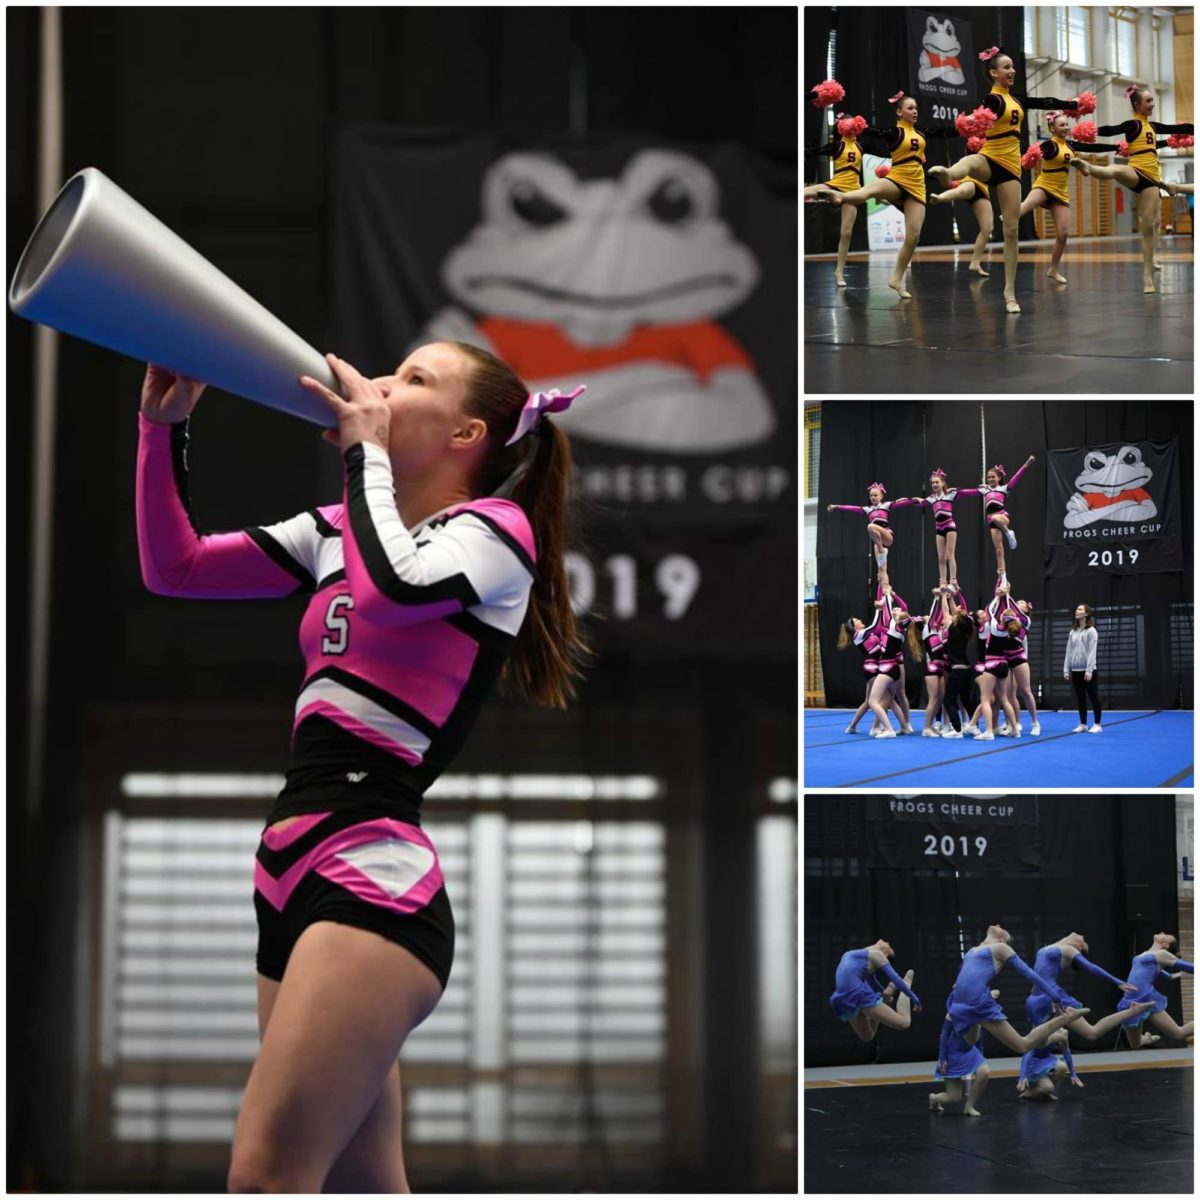 FROGS CHEER CUP 2019